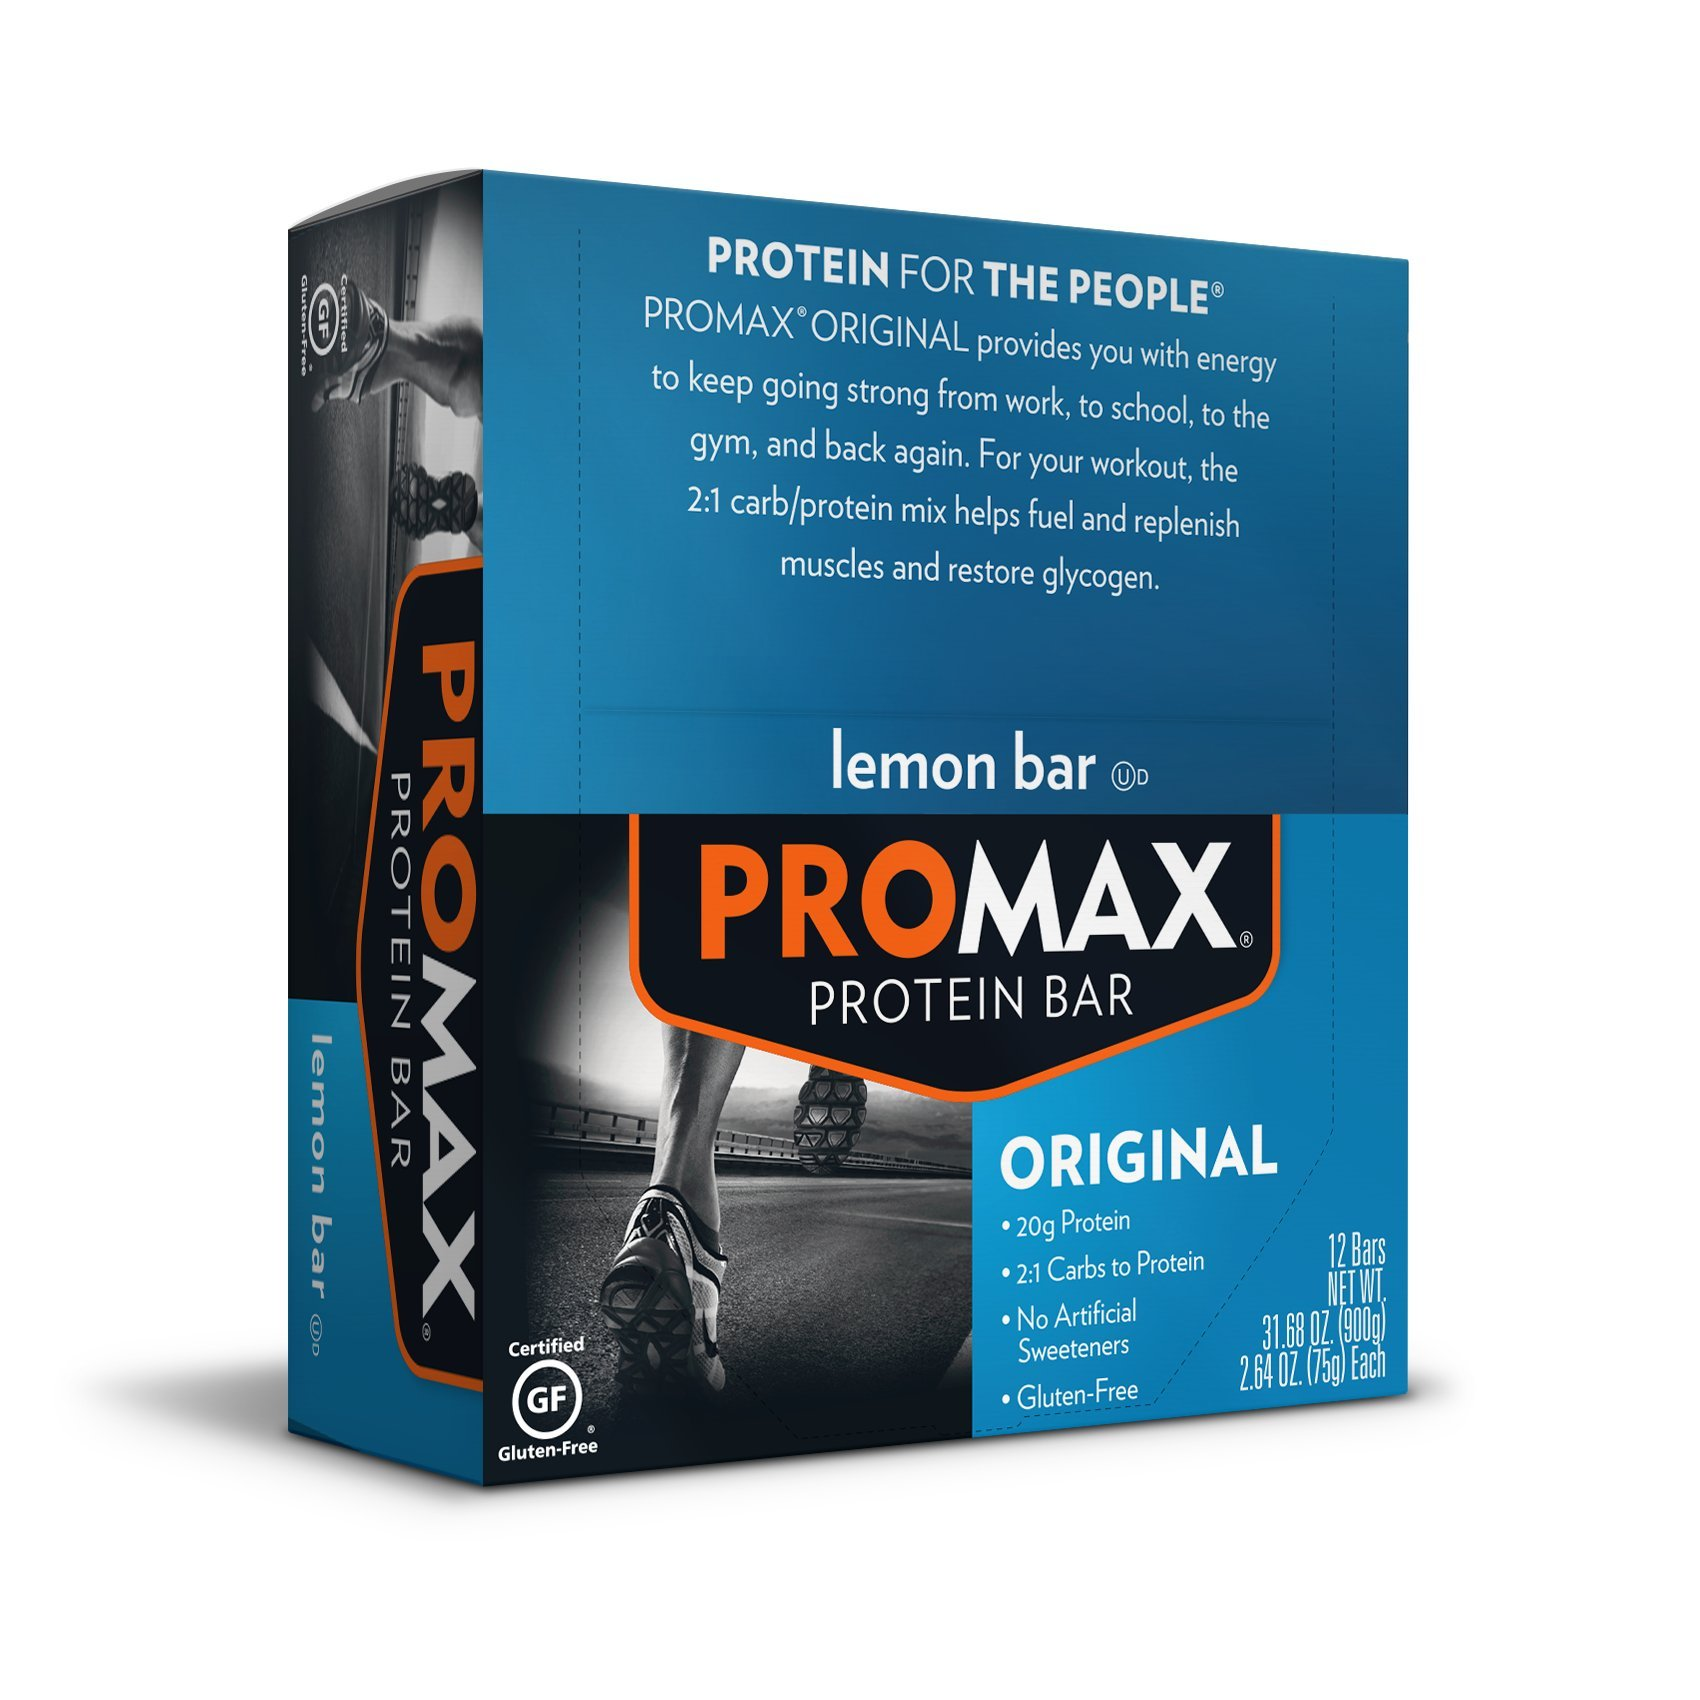 Promax Protein Bar, Lemon, 12-Pack